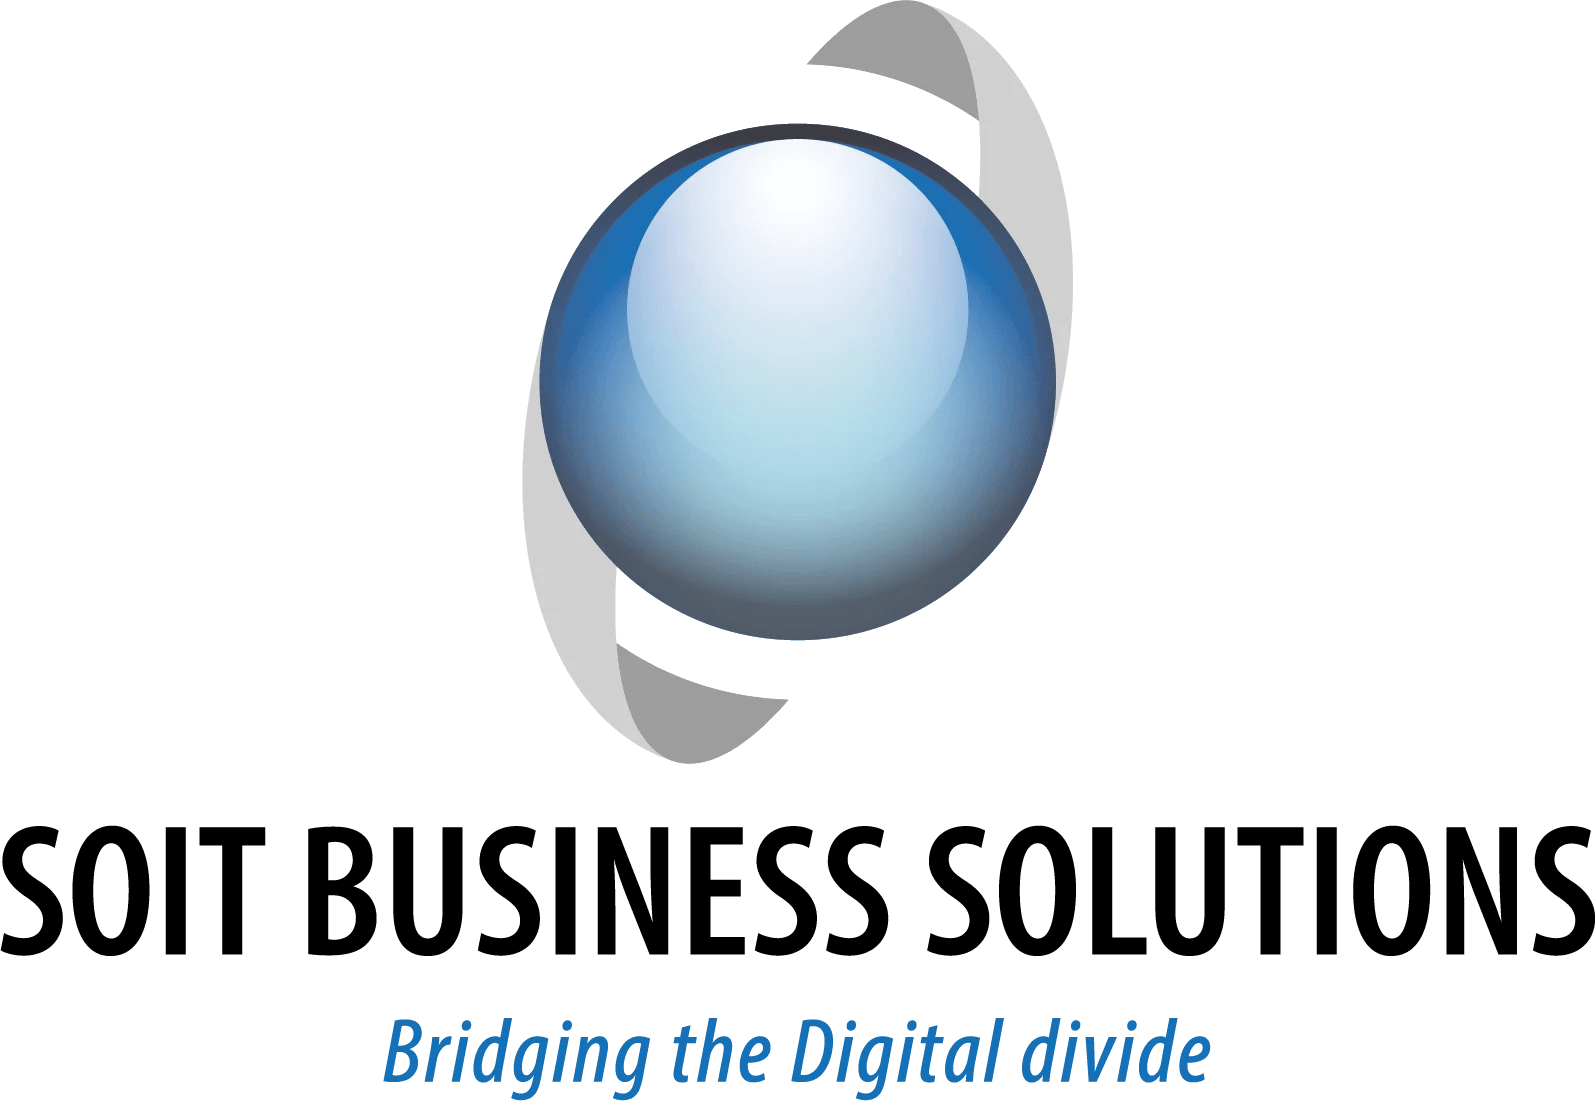 SOIT Business Solutions (Pty) Ltd